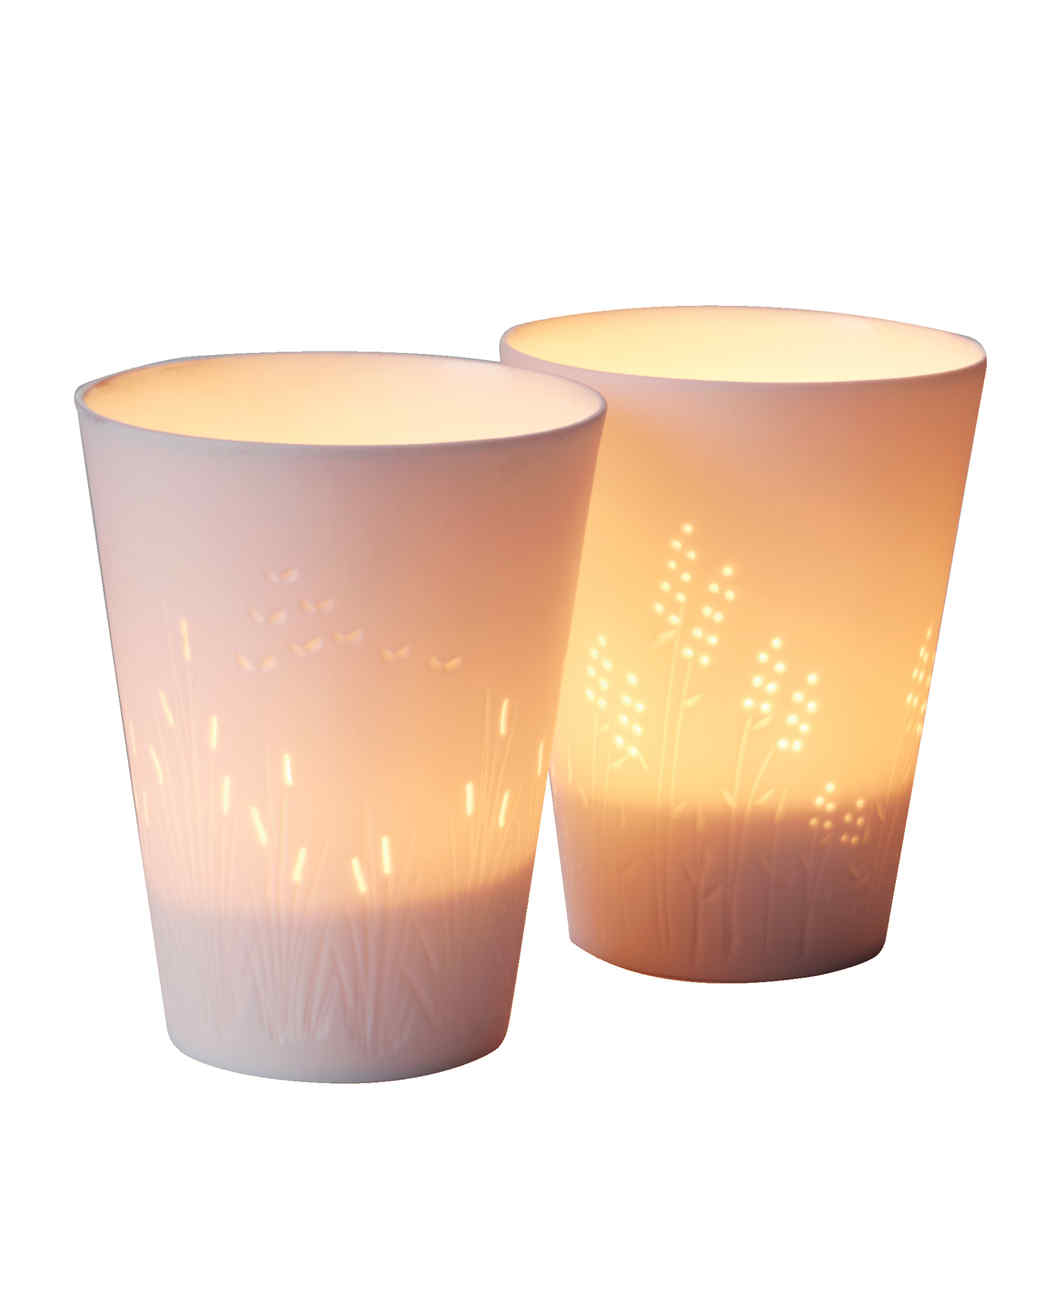 white-votives-095-d112522.jpg